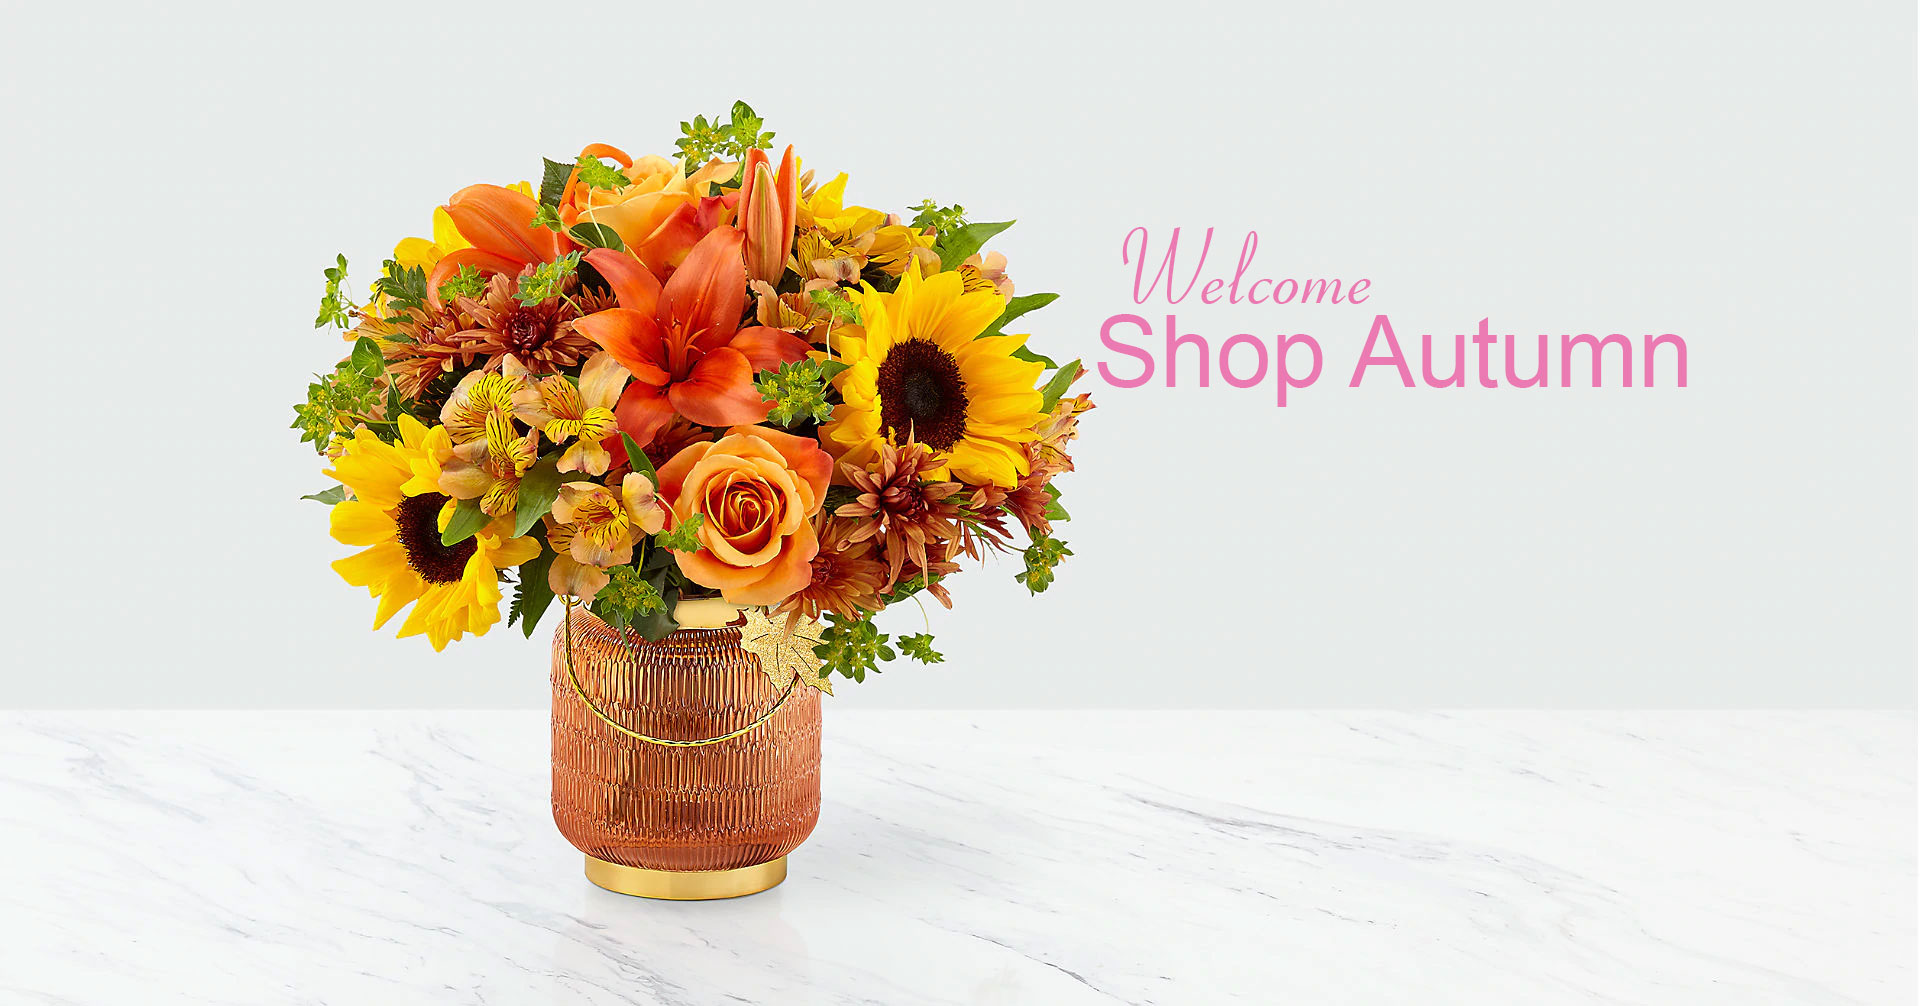 Autumn Moments, an autumnal mix of sunflowers, roses, asiatic lily and bupleurum in a gift-quality vase. Finished with a metal leaf.